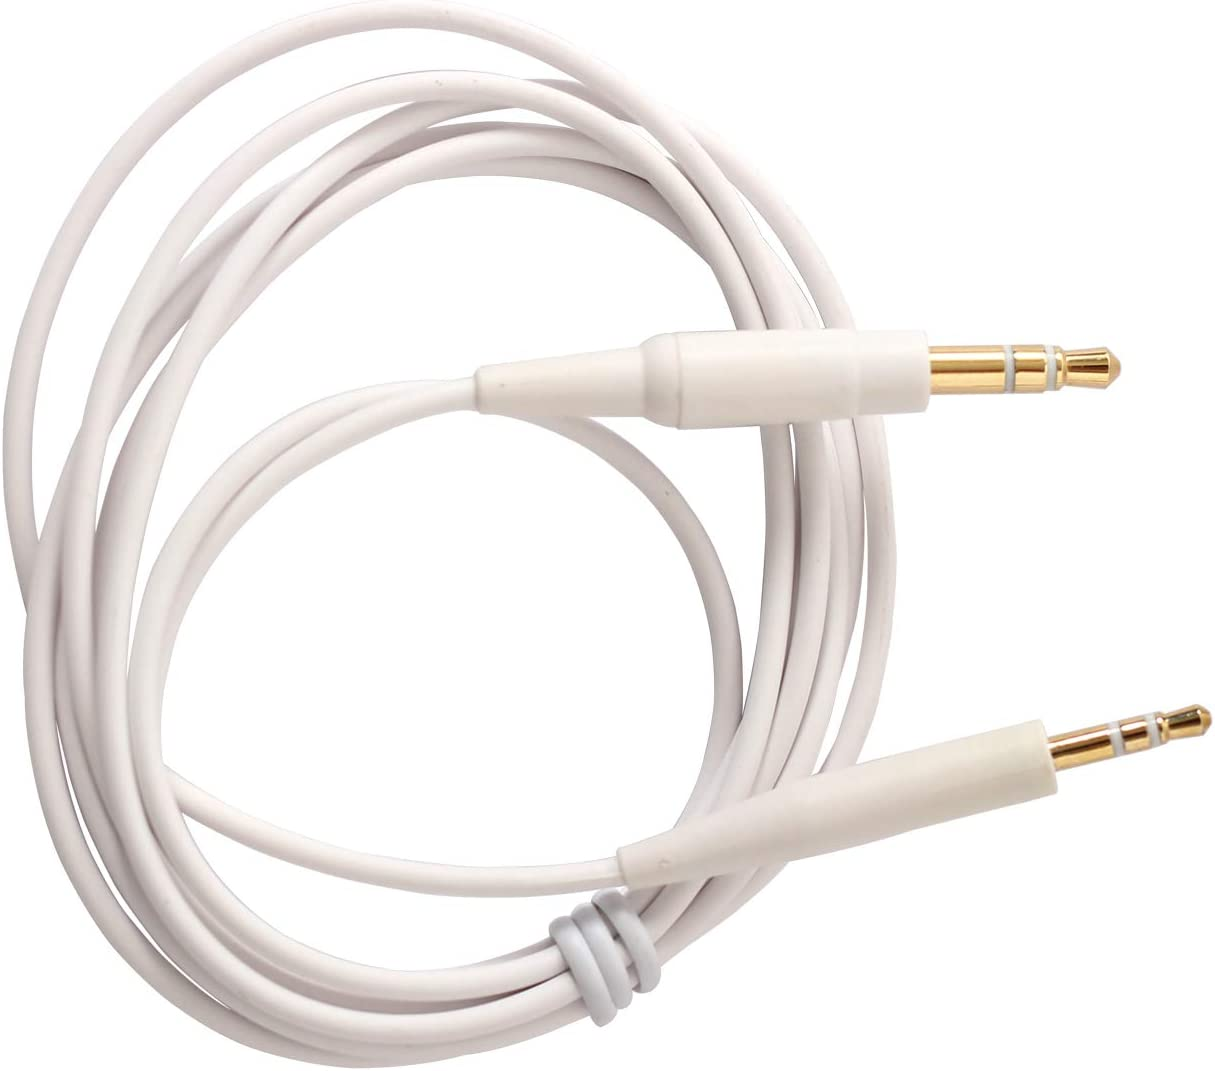 Soundlink Headphone Replacement Cable Fit Bose On-Ear 2//OE2//OE2i//QC25//QC35//Soundlink//SoundTrue Headphones,Headphone Replacement Audio Cable White